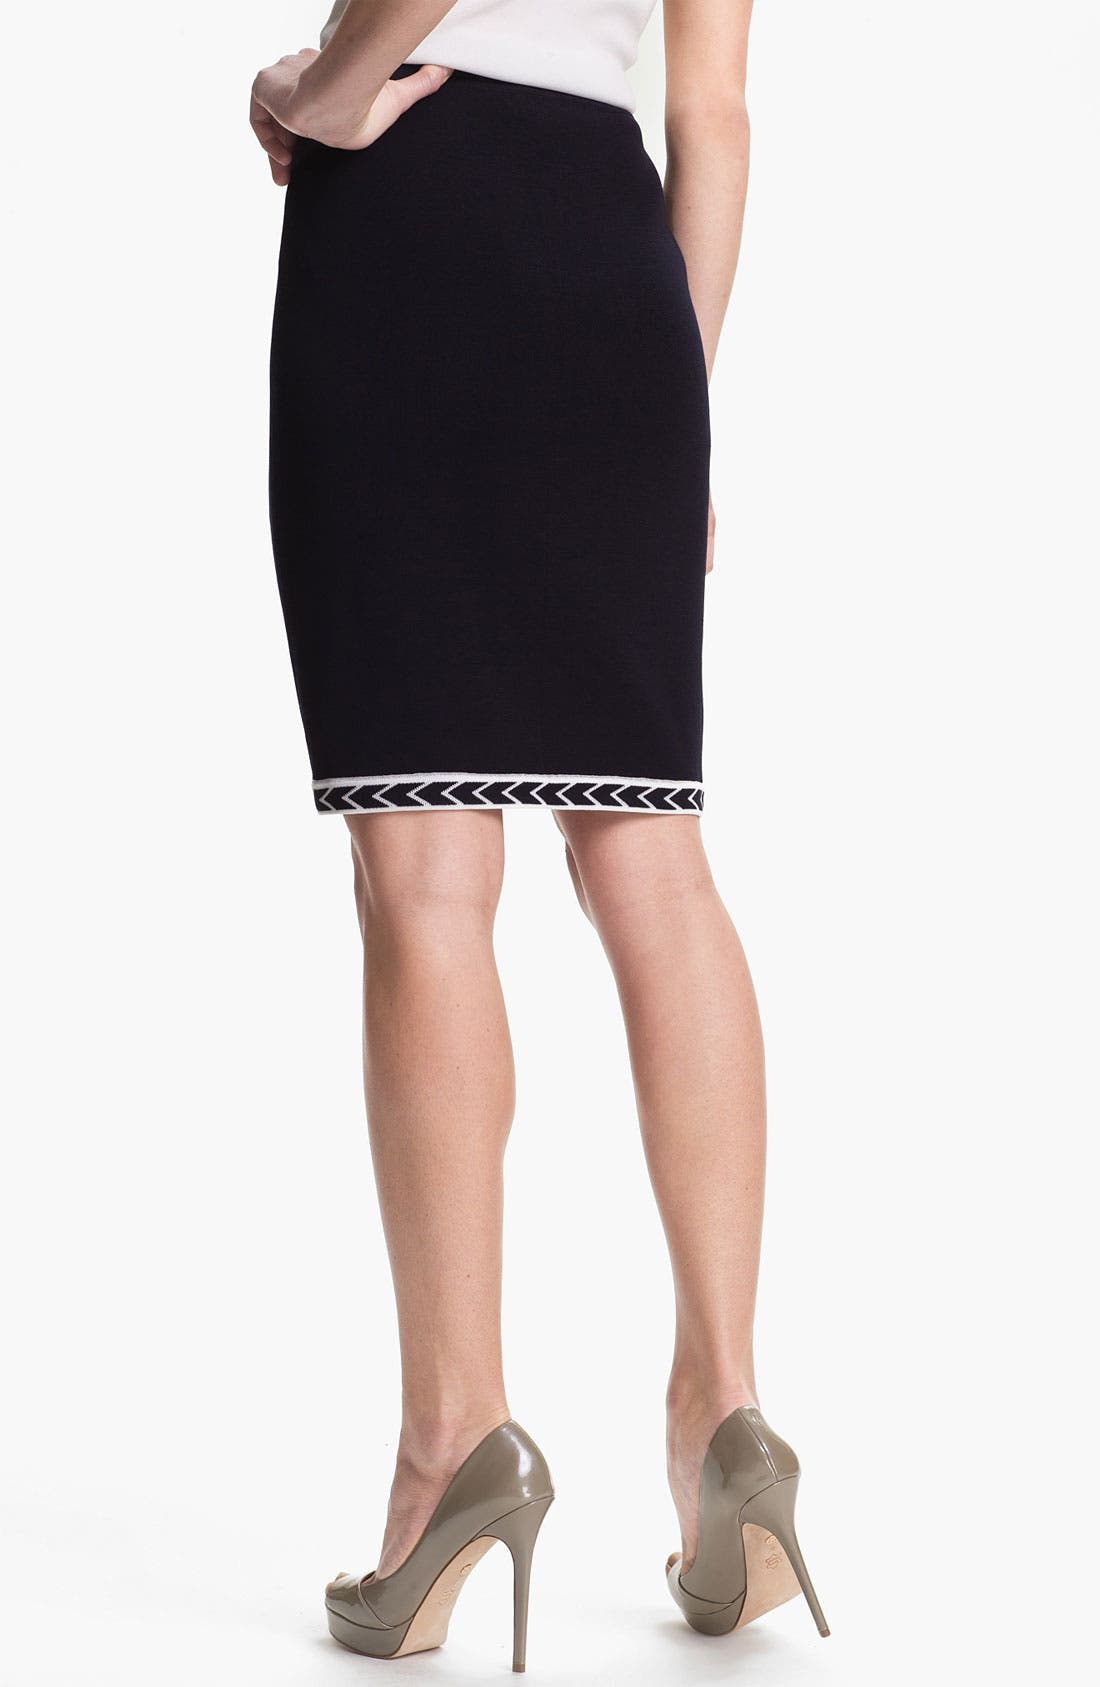 Alternate Image 2  - Exclusively Misook 'Adrienne' Skirt (Petite) (Online Only)